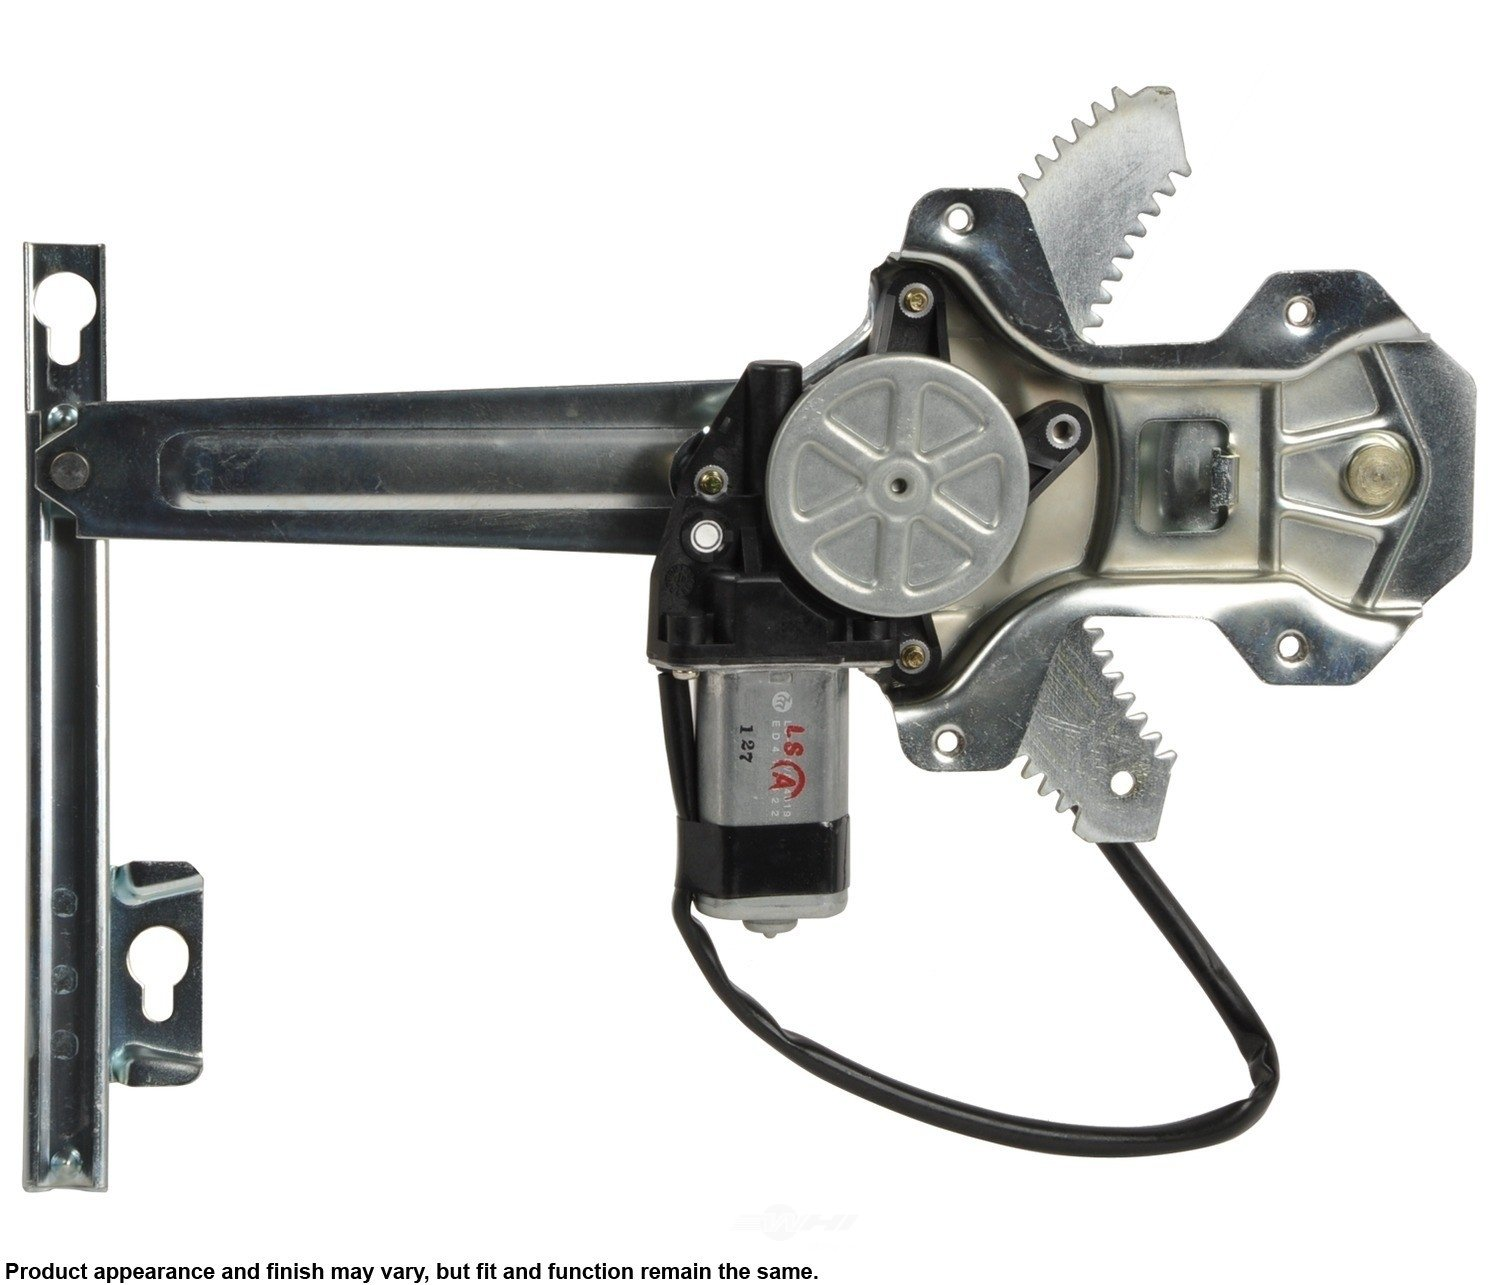 CARDONE NEW - Power Window Motor And Regulator Assembly (Rear Right) - A1S 82-1549BR